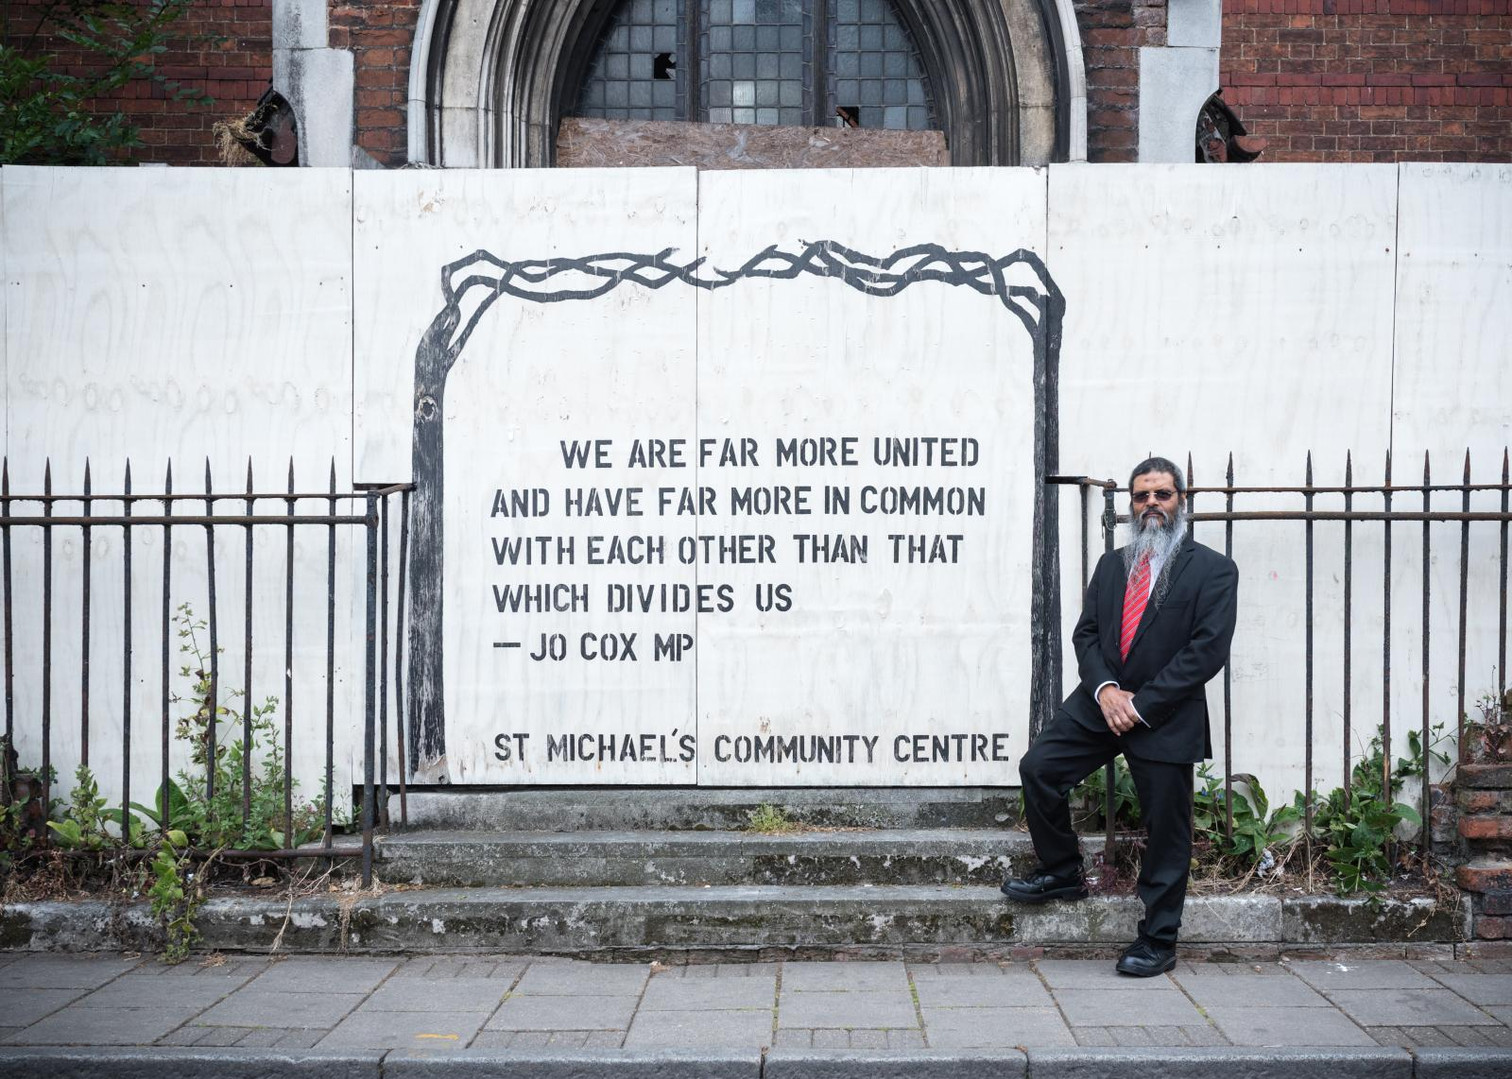 The sentence written on the wall of the construction site still open is by Helen Joanne Cox a british politician who served as the Member of Parliament (MP) for the Labour Party murdered by an far right-wing extremist during the Brexit campaign.